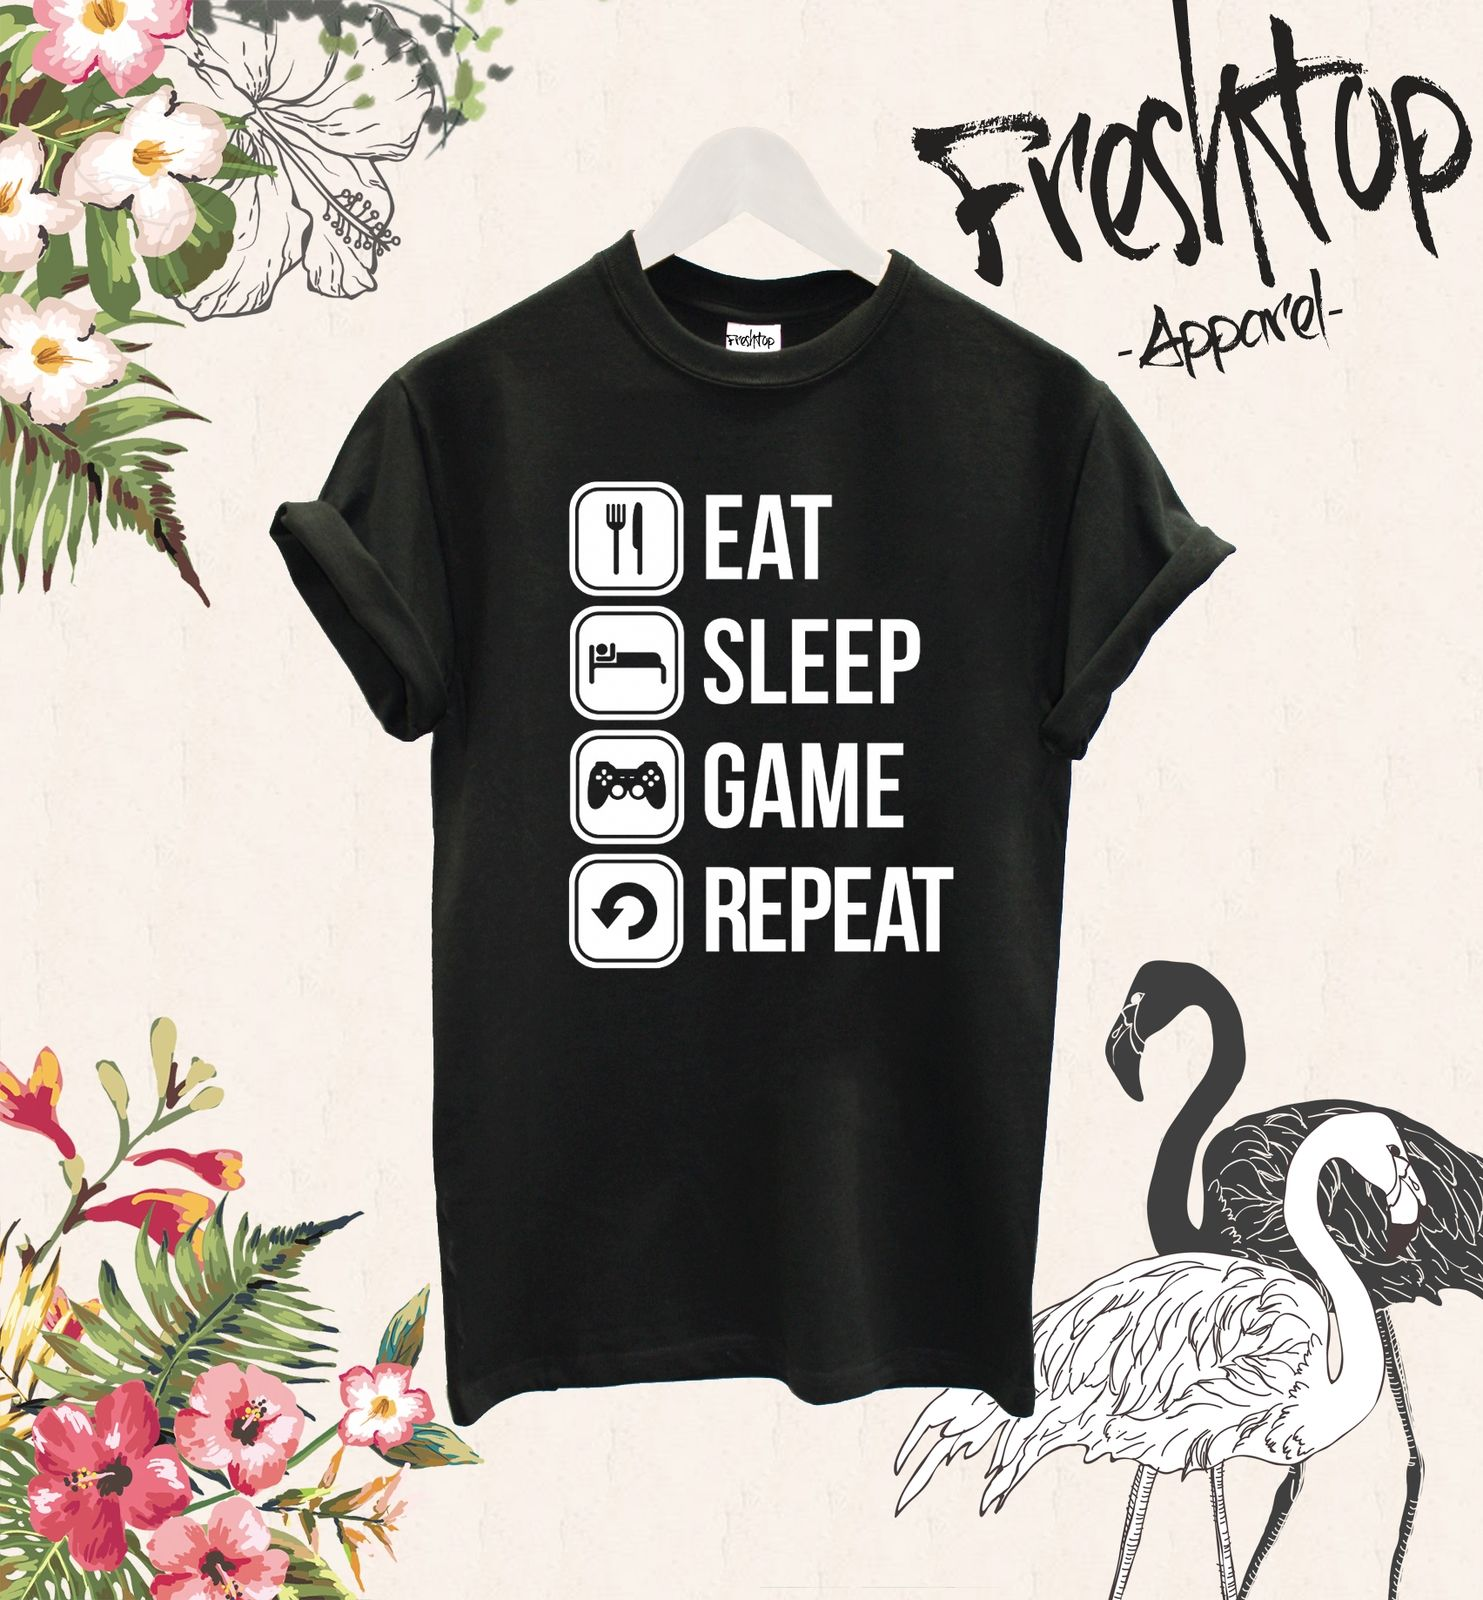 Eat Sleep Game Repeat T Shirt Twitch Youtube Gamer Play CS Go MMO RPG Gameboy Summer 2017 Short Sleeve Plus Size T-shirt image